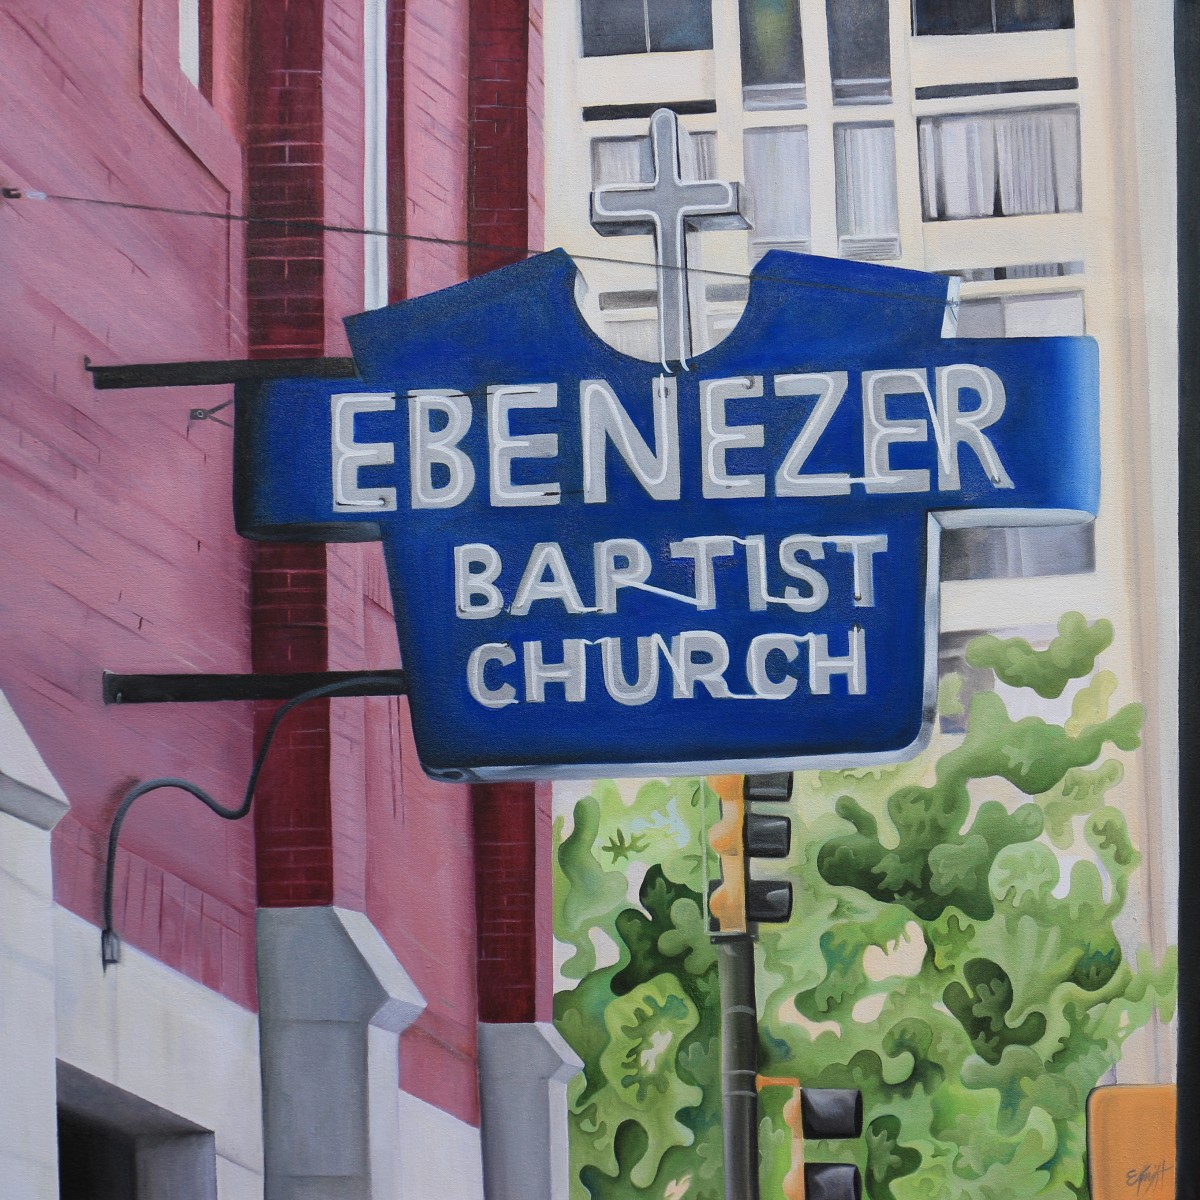 Ebenezer Baptist Church by Emma Knight